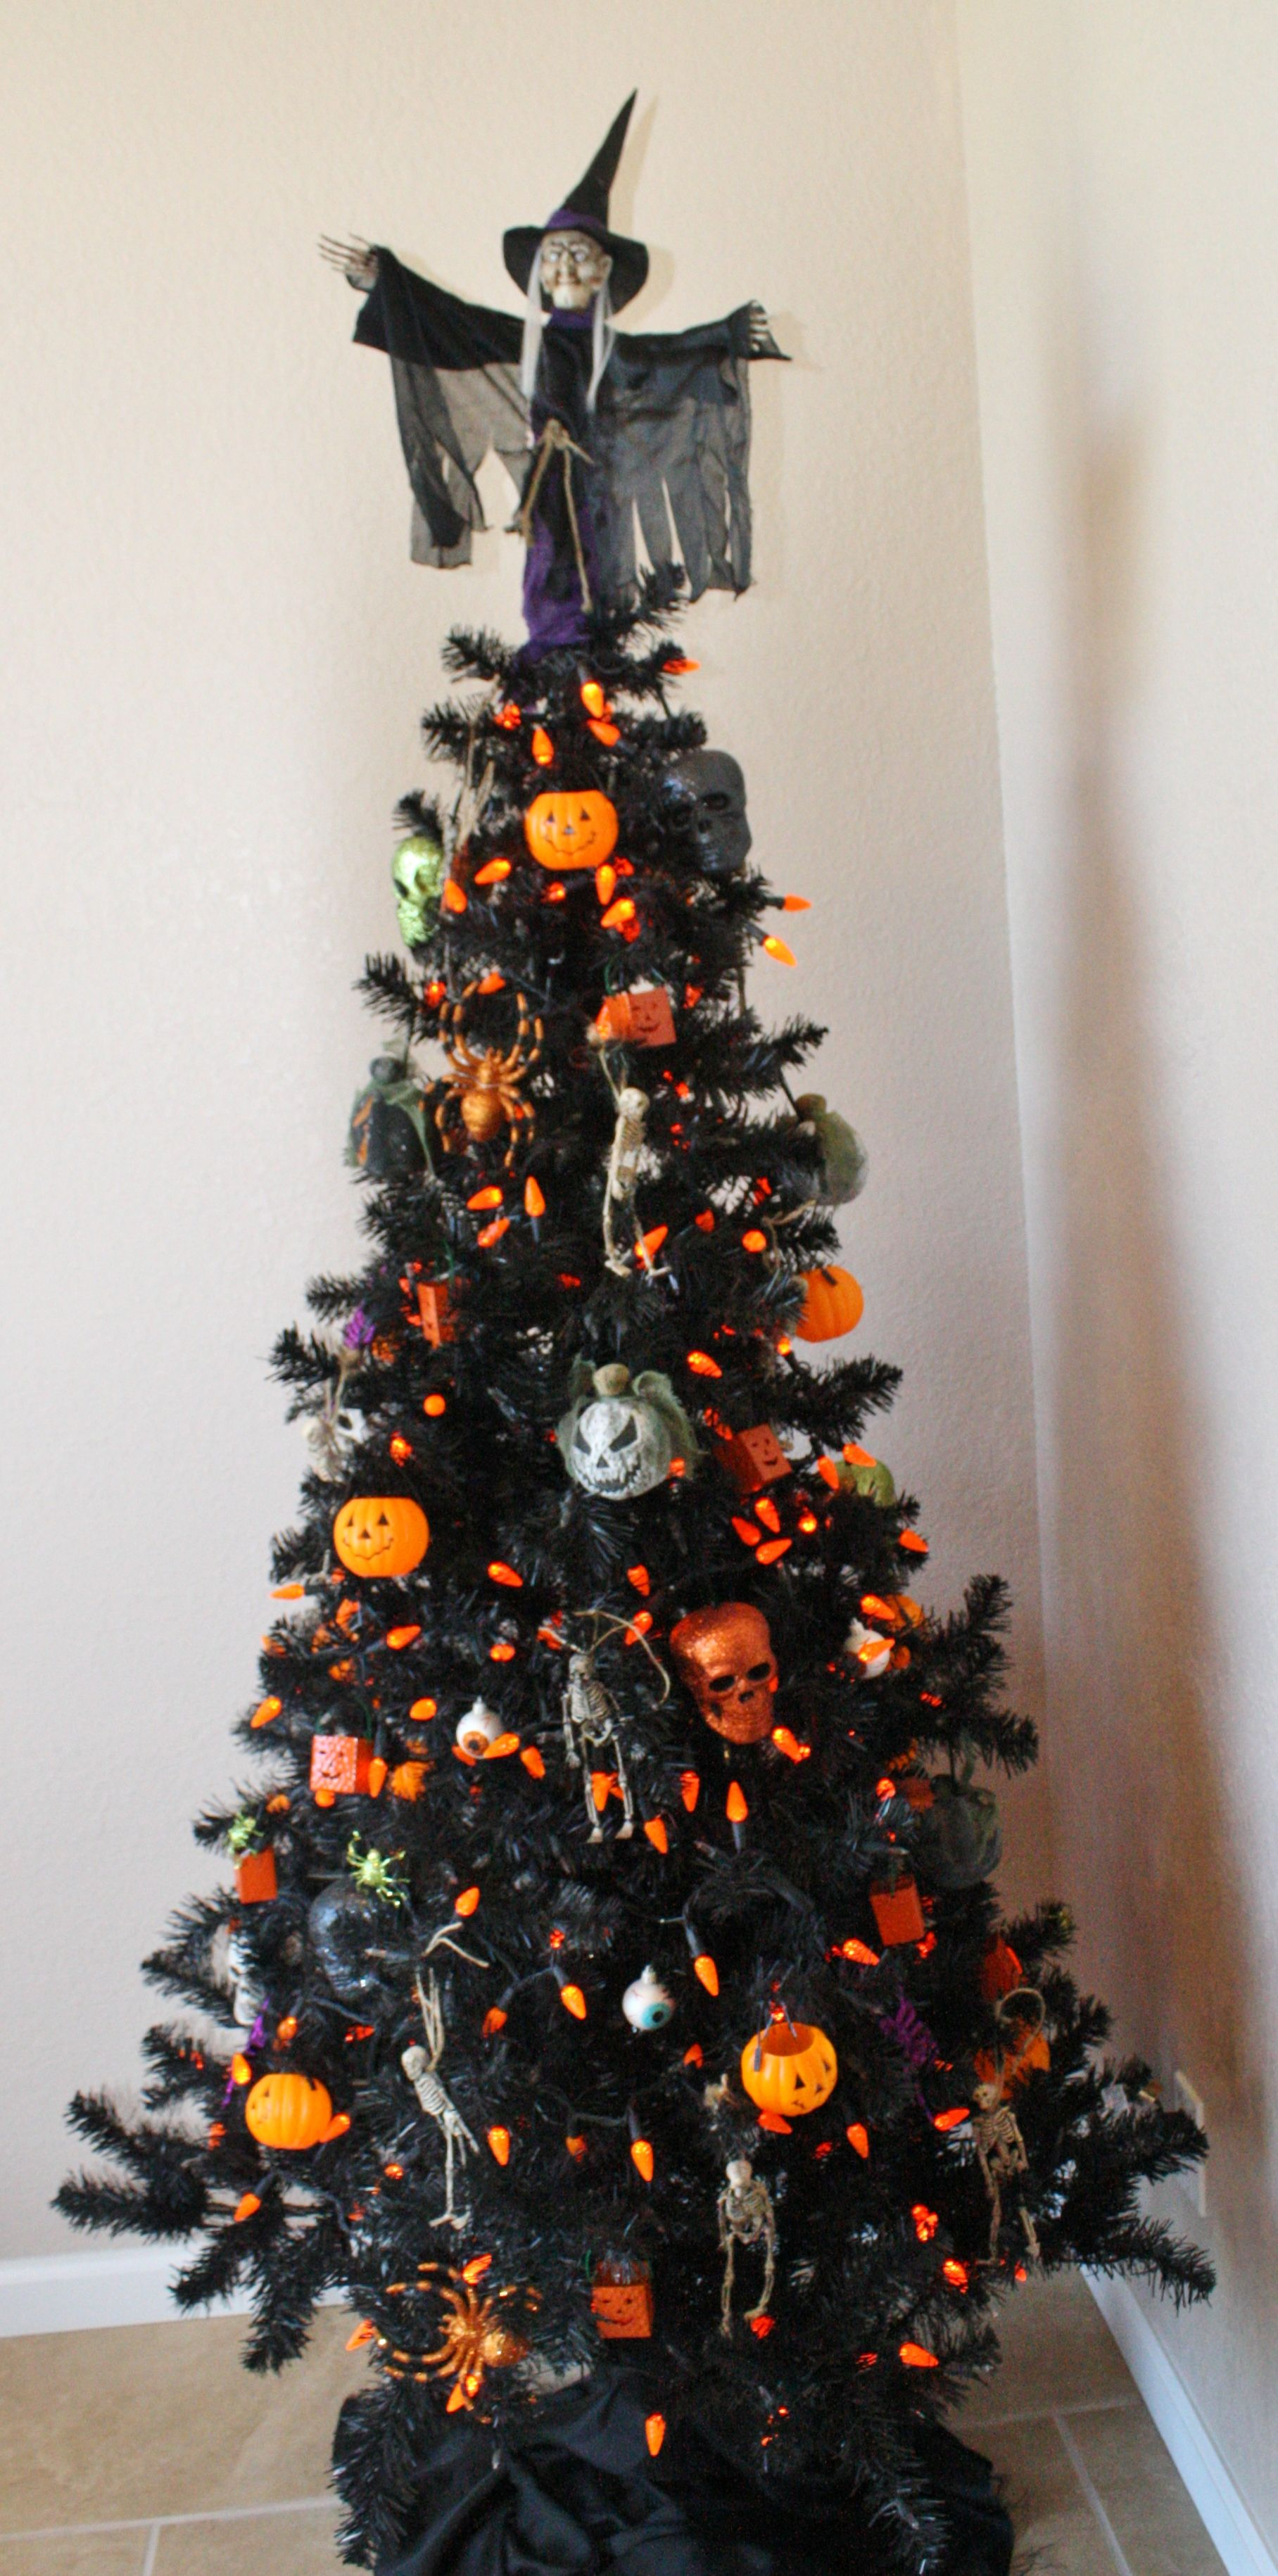 Decorating Christmas Trees For Halloween.Halloween Tree Weekend Projects Halloween Trees Black